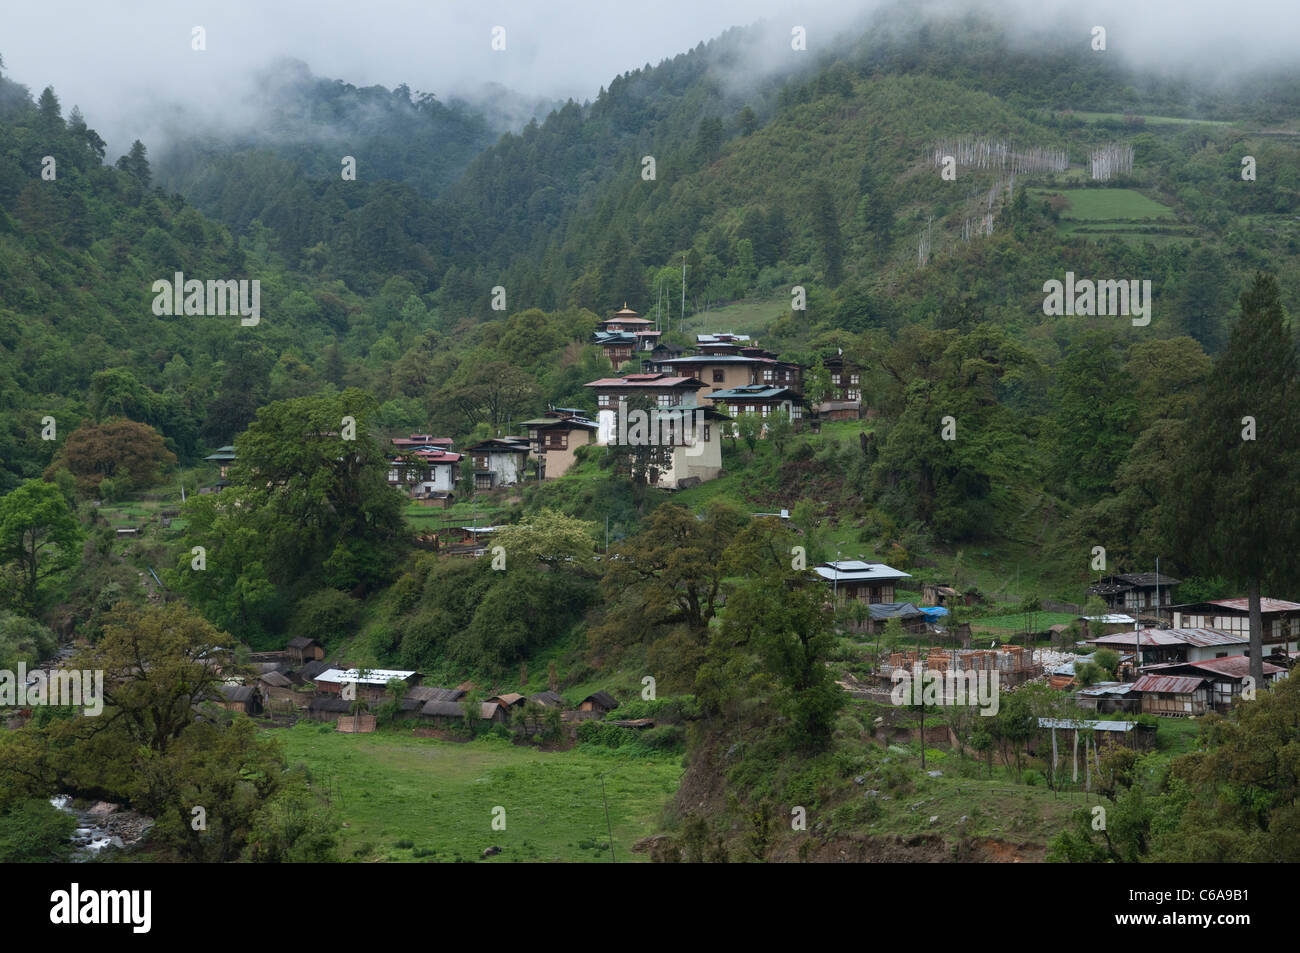 view of tipycal village surrounded by hills and forest. bhutan - Stock Image